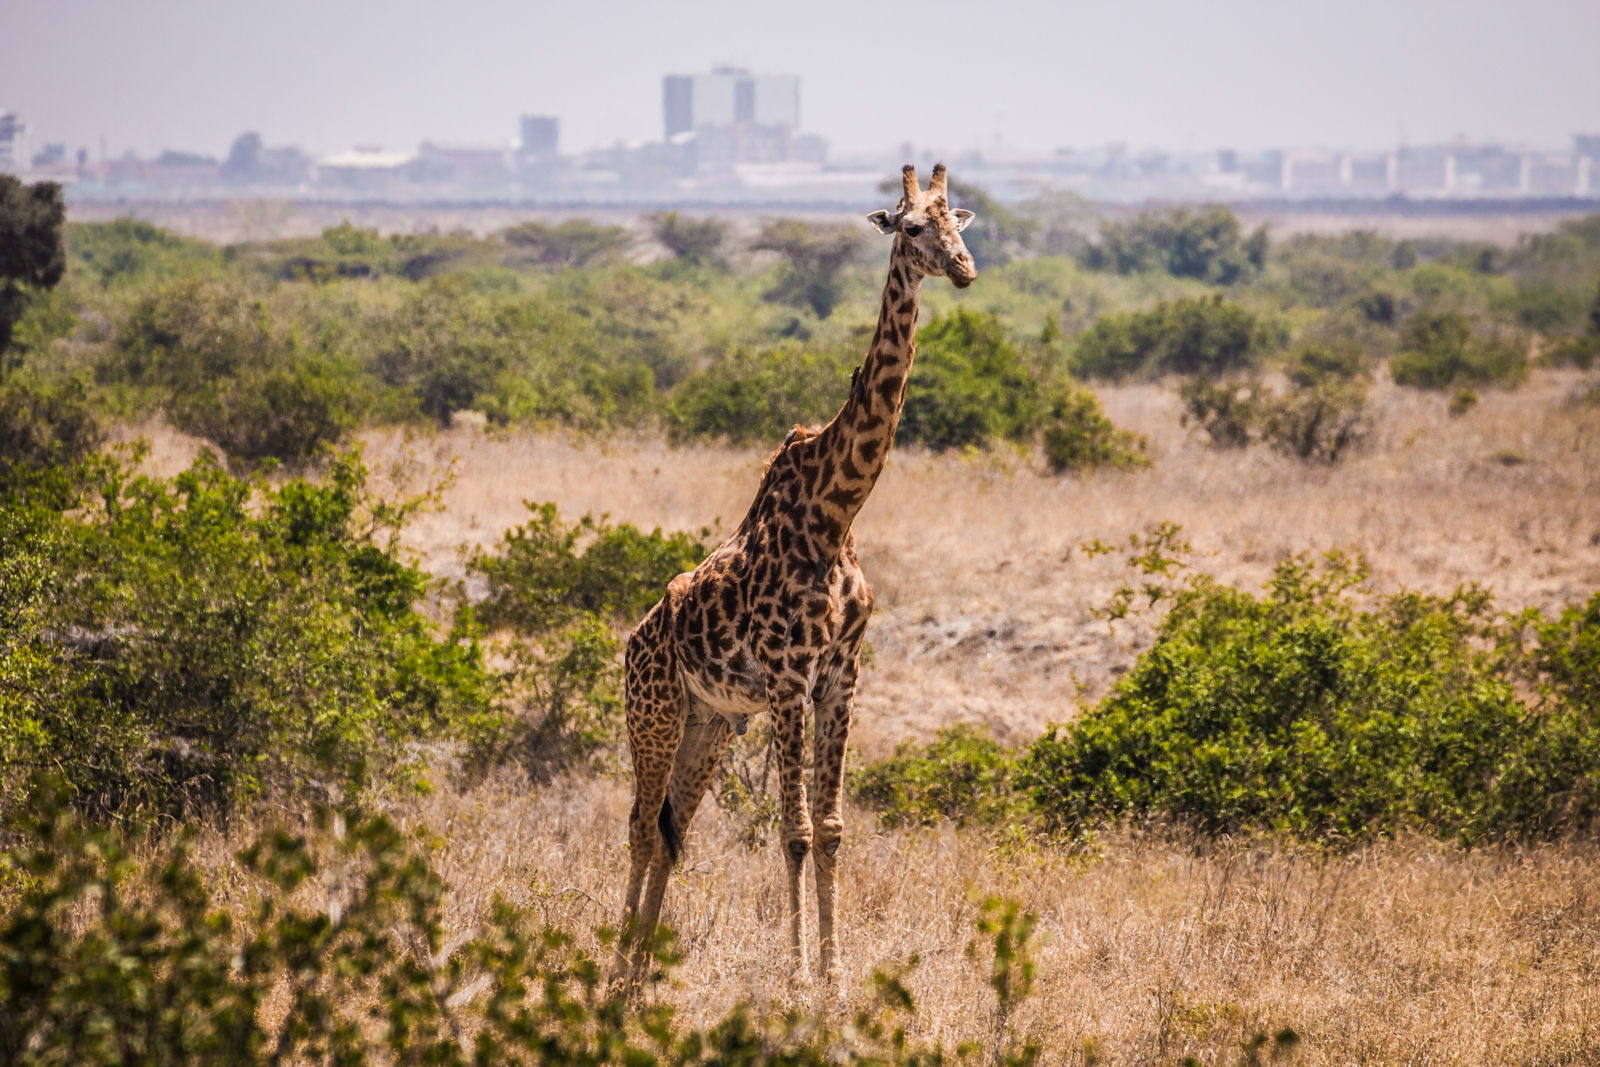 Girafffe with Nairobi Central Business District (CBD) in the background